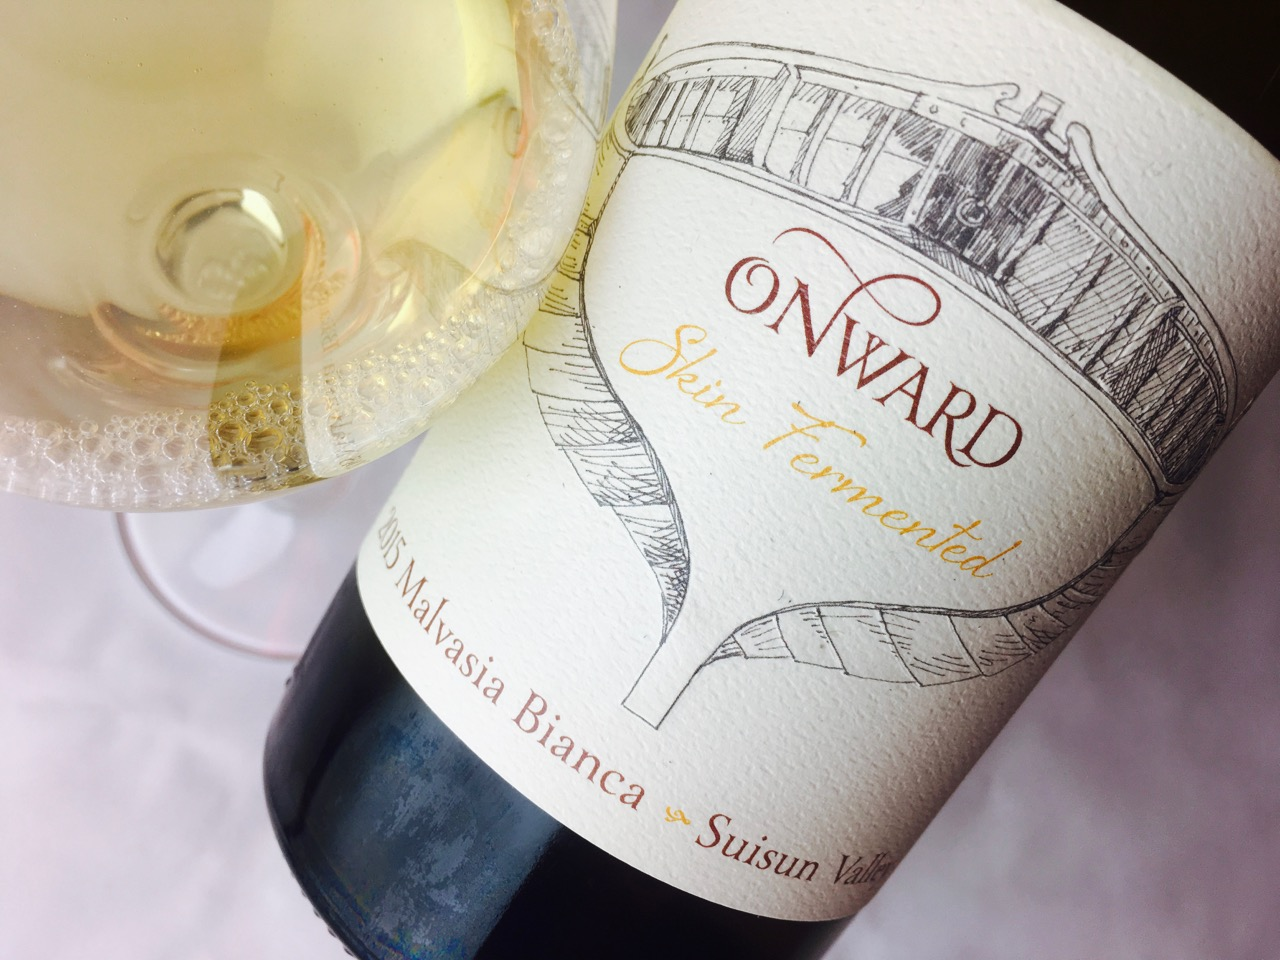 2015 Onward Skin Fermented Malvasia Suisun Valley